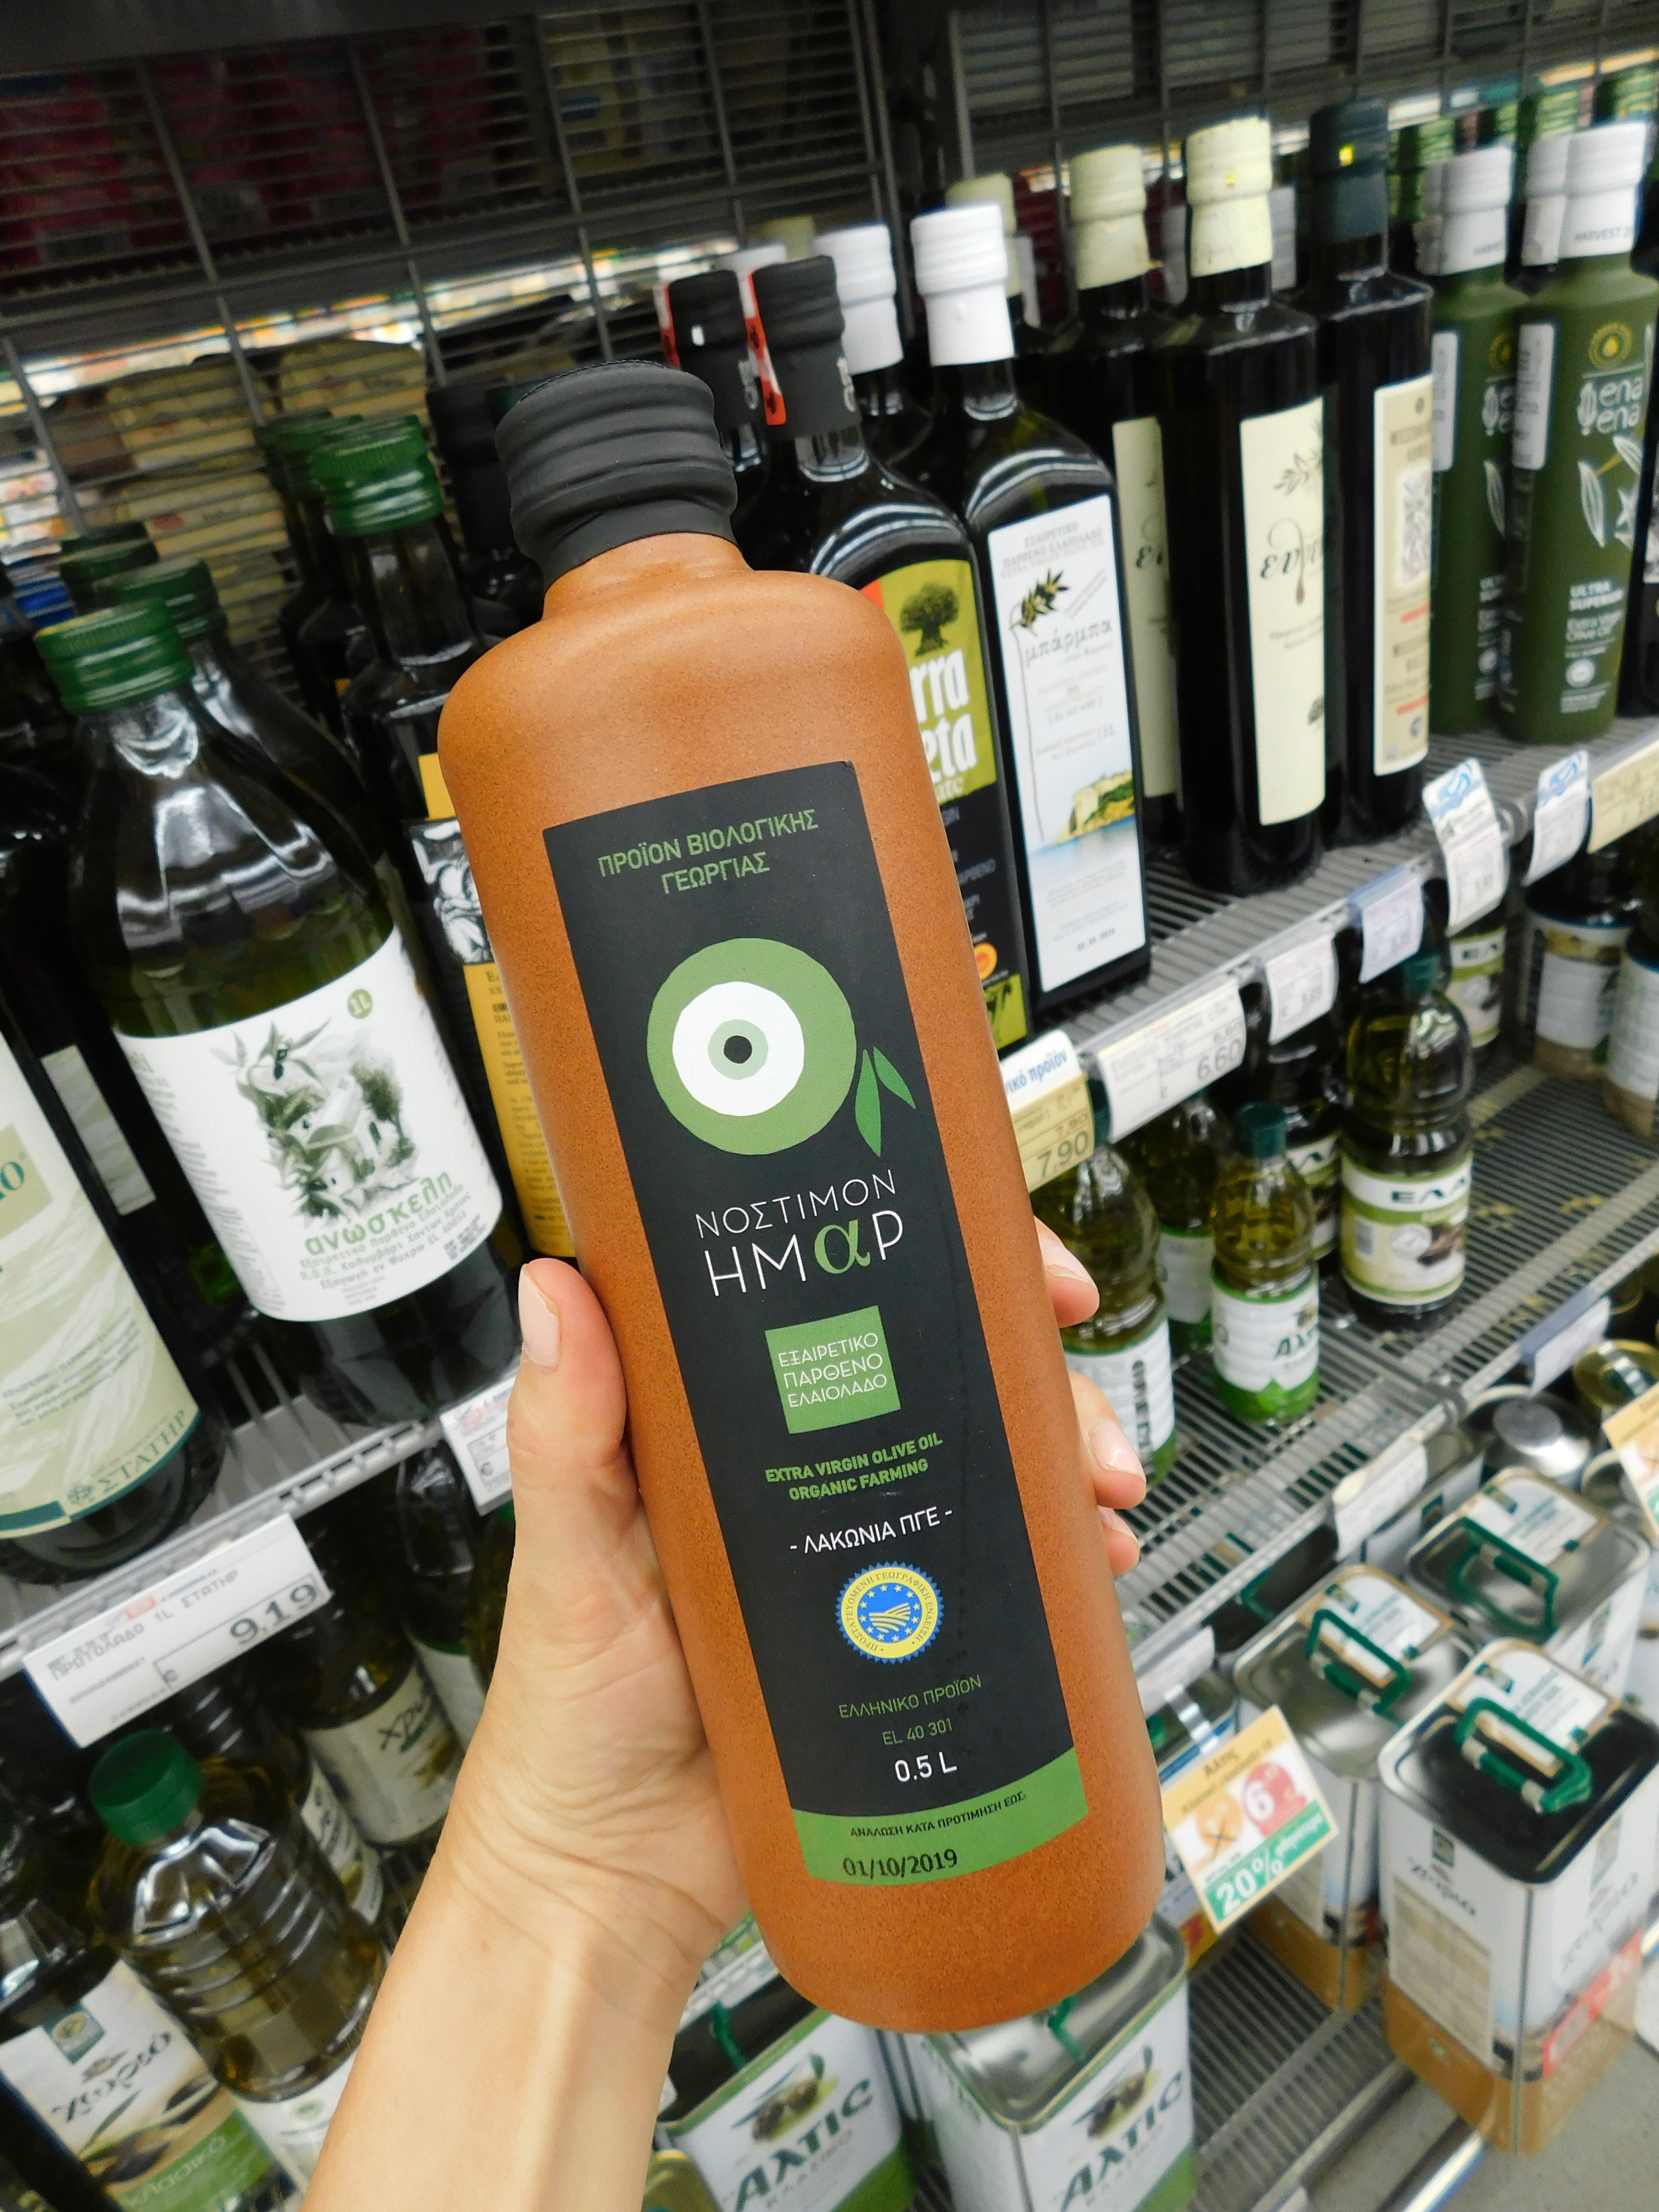 Fancy Greek olive oils, something Greece is certainly very well known for in the USA.